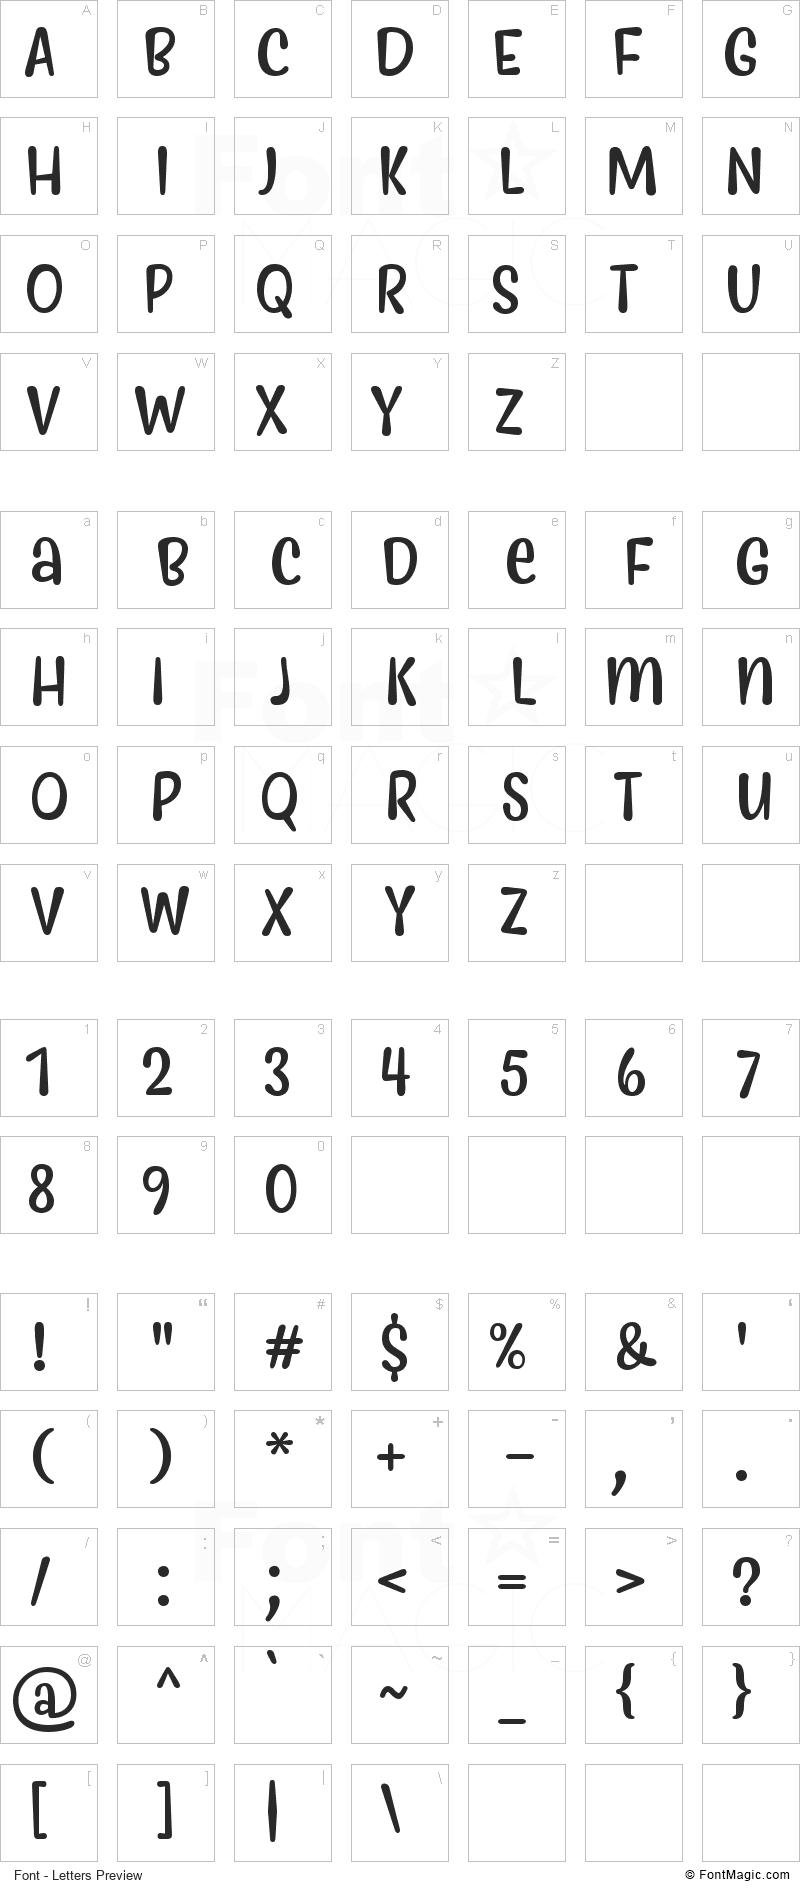 Myfrida Font - All Latters Preview Chart